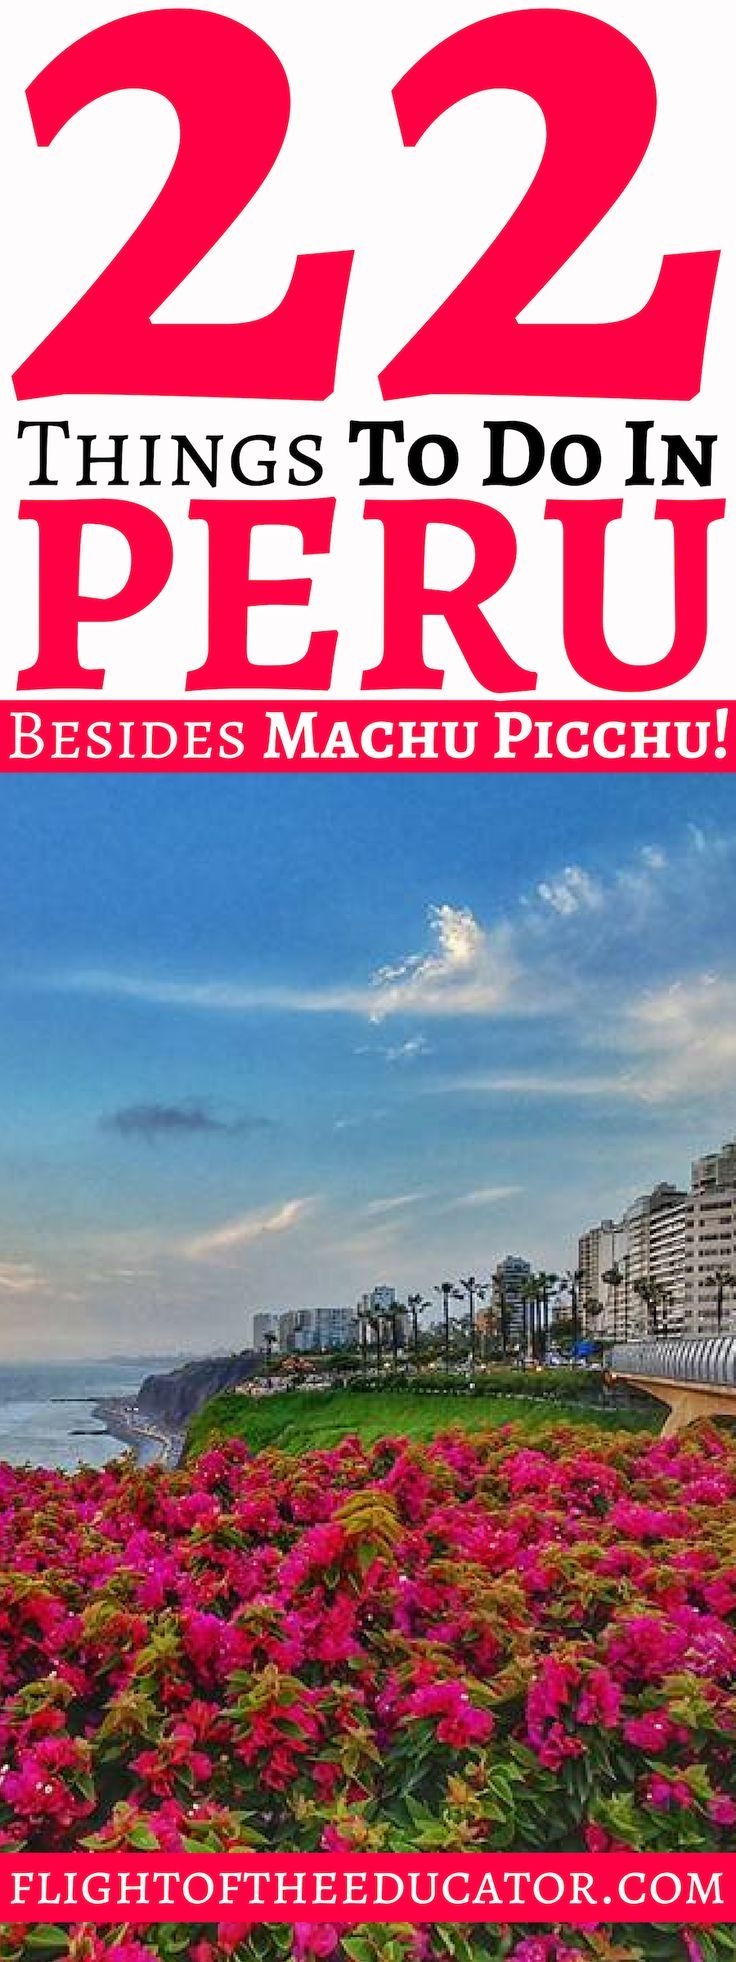 22 Issues to do in Peru apart from Machu Picchu!